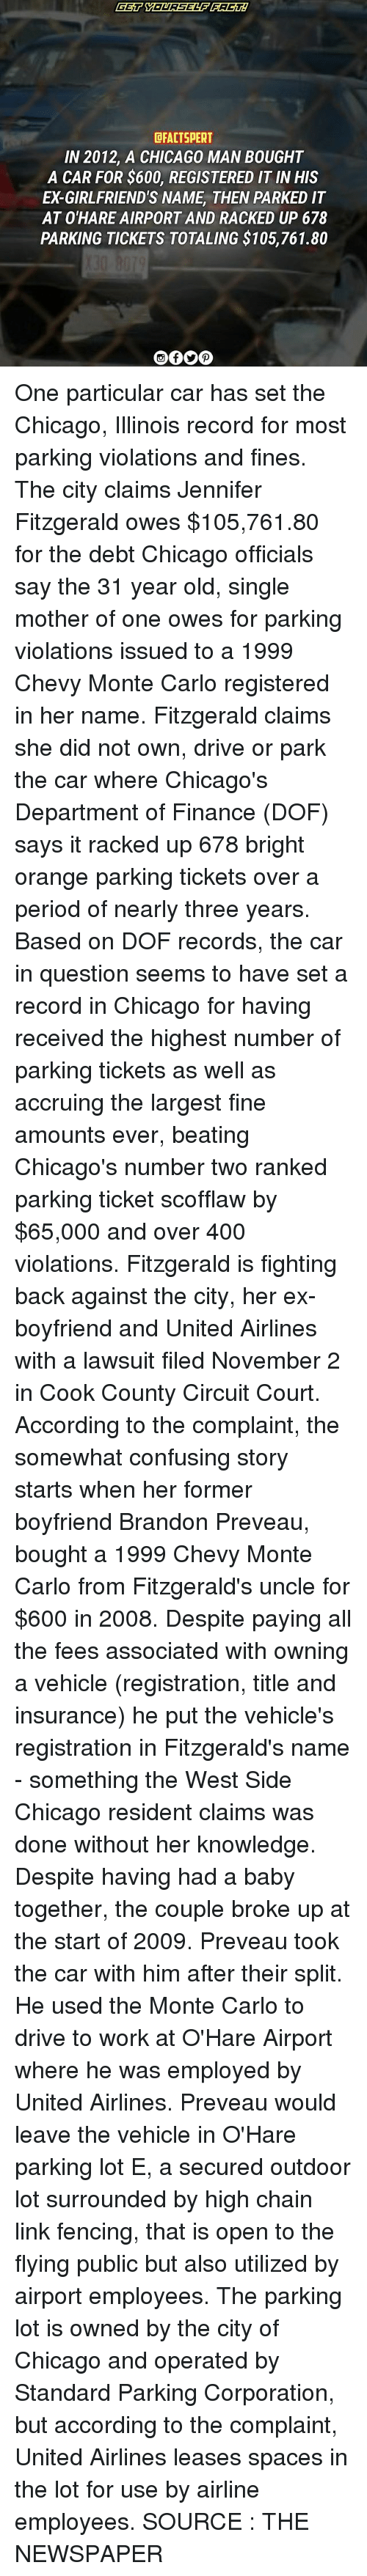 Chicago, Finance, and Memes: CFACTSPERT  IN 2012, A CHICAGO MAN BOUGHT  A CAR FOR $600, REGISTERED IT INHIS  ED GIRLFRIEND'S NAME THEN PARKED IT  AT O'HARE AIRPORT AND RACKED UP 678  PARKING TICKETS TOTALING $105,761.80 One particular car has set the Chicago, Illinois record for most parking violations and fines. The city claims Jennifer Fitzgerald owes $105,761.80 for the debt Chicago officials say the 31 year old, single mother of one owes for parking violations issued to a 1999 Chevy Monte Carlo registered in her name. Fitzgerald claims she did not own, drive or park the car where Chicago's Department of Finance (DOF) says it racked up 678 bright orange parking tickets over a period of nearly three years. Based on DOF records, the car in question seems to have set a record in Chicago for having received the highest number of parking tickets as well as accruing the largest fine amounts ever, beating Chicago's number two ranked parking ticket scofflaw by $65,000 and over 400 violations. Fitzgerald is fighting back against the city, her ex-boyfriend and United Airlines with a lawsuit filed November 2 in Cook County Circuit Court. According to the complaint, the somewhat confusing story starts when her former boyfriend Brandon Preveau, bought a 1999 Chevy Monte Carlo from Fitzgerald's uncle for $600 in 2008. Despite paying all the fees associated with owning a vehicle (registration, title and insurance) he put the vehicle's registration in Fitzgerald's name - something the West Side Chicago resident claims was done without her knowledge. Despite having had a baby together, the couple broke up at the start of 2009. Preveau took the car with him after their split. He used the Monte Carlo to drive to work at O'Hare Airport where he was employed by United Airlines. Preveau would leave the vehicle in O'Hare parking lot E, a secured outdoor lot surrounded by high chain link fencing, that is open to the flying public but also utilized by airport employees. The parking lot is owned by the city of Chicago and operated by Standard Parking Corporation, but according to the complaint, United Airlines leases spaces in the lot for use by airline employees. SOURCE : THE NEWSPAPER